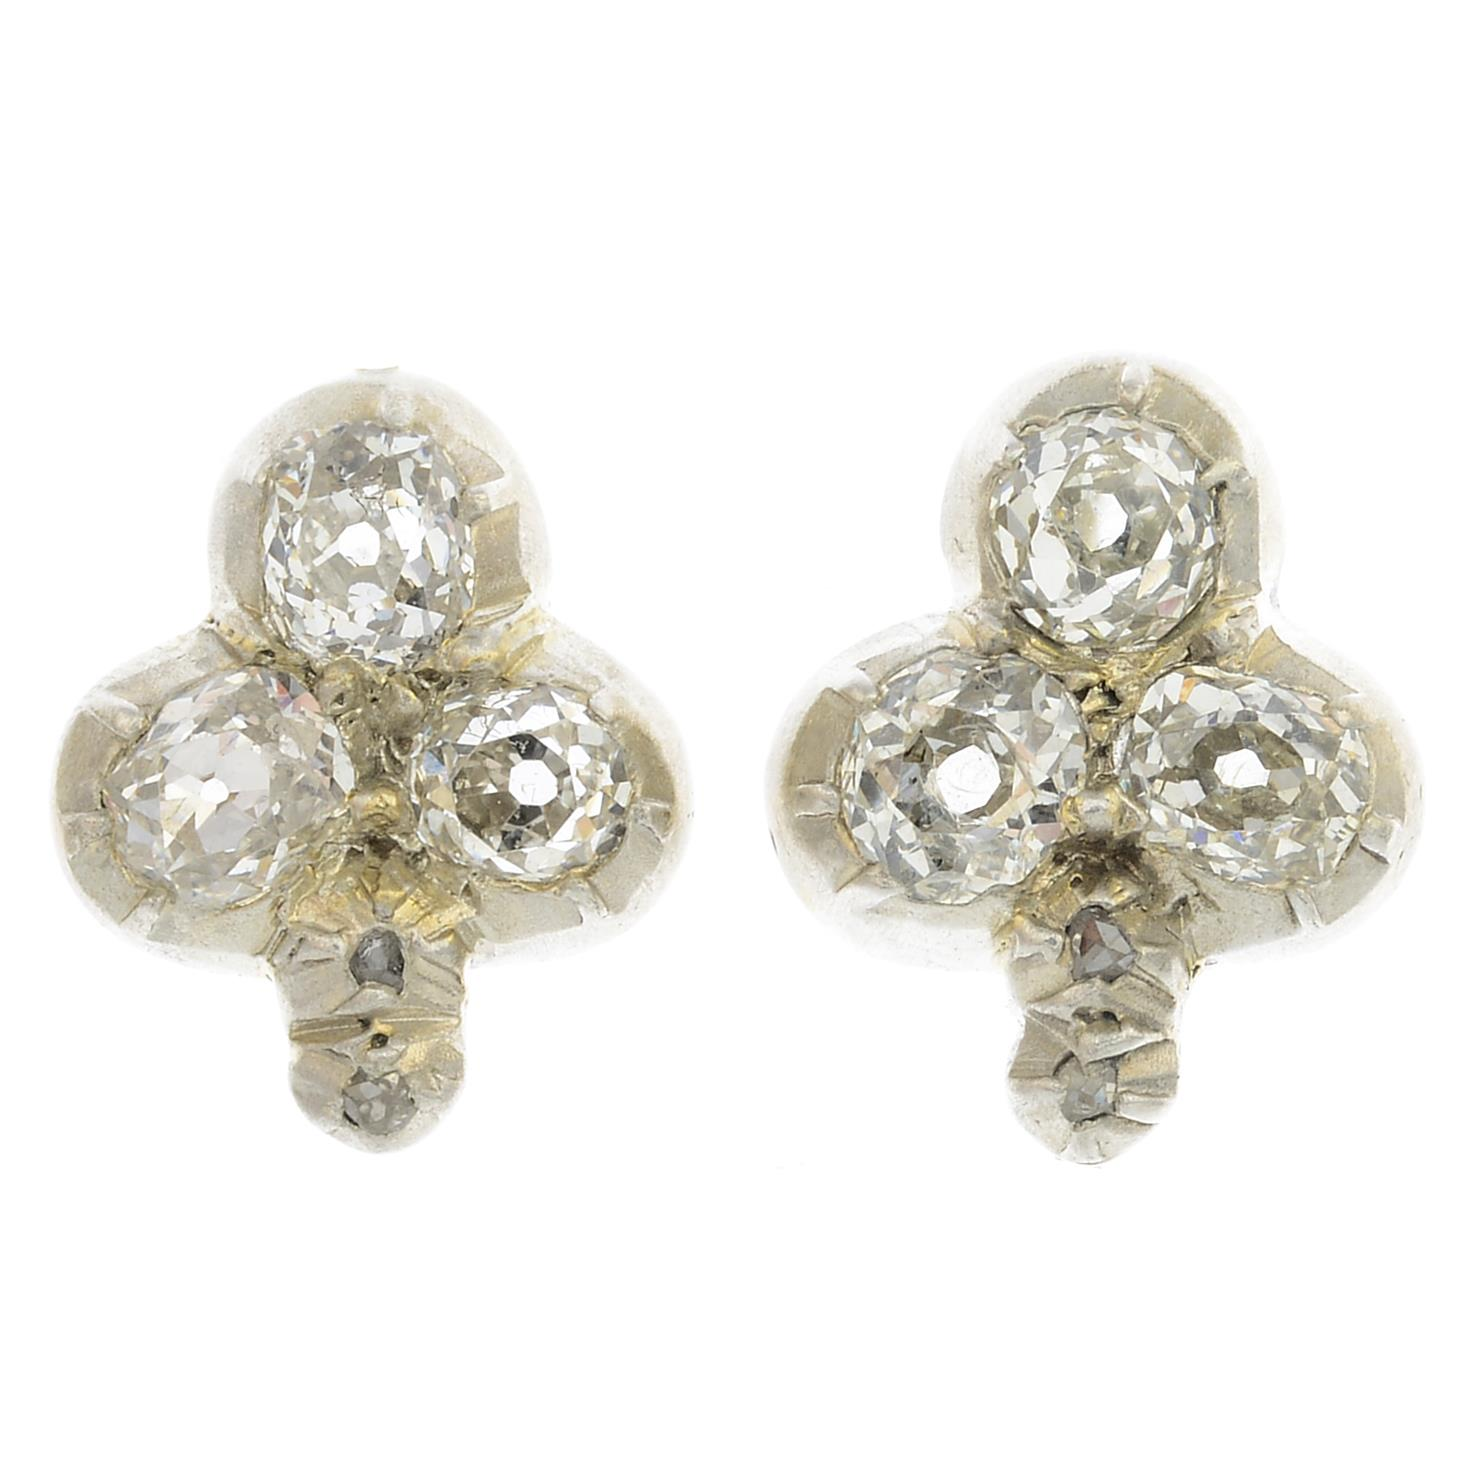 Lot 50 - A pair of diamond cluster earrings.Estimated total diamond weight 1.20cts,